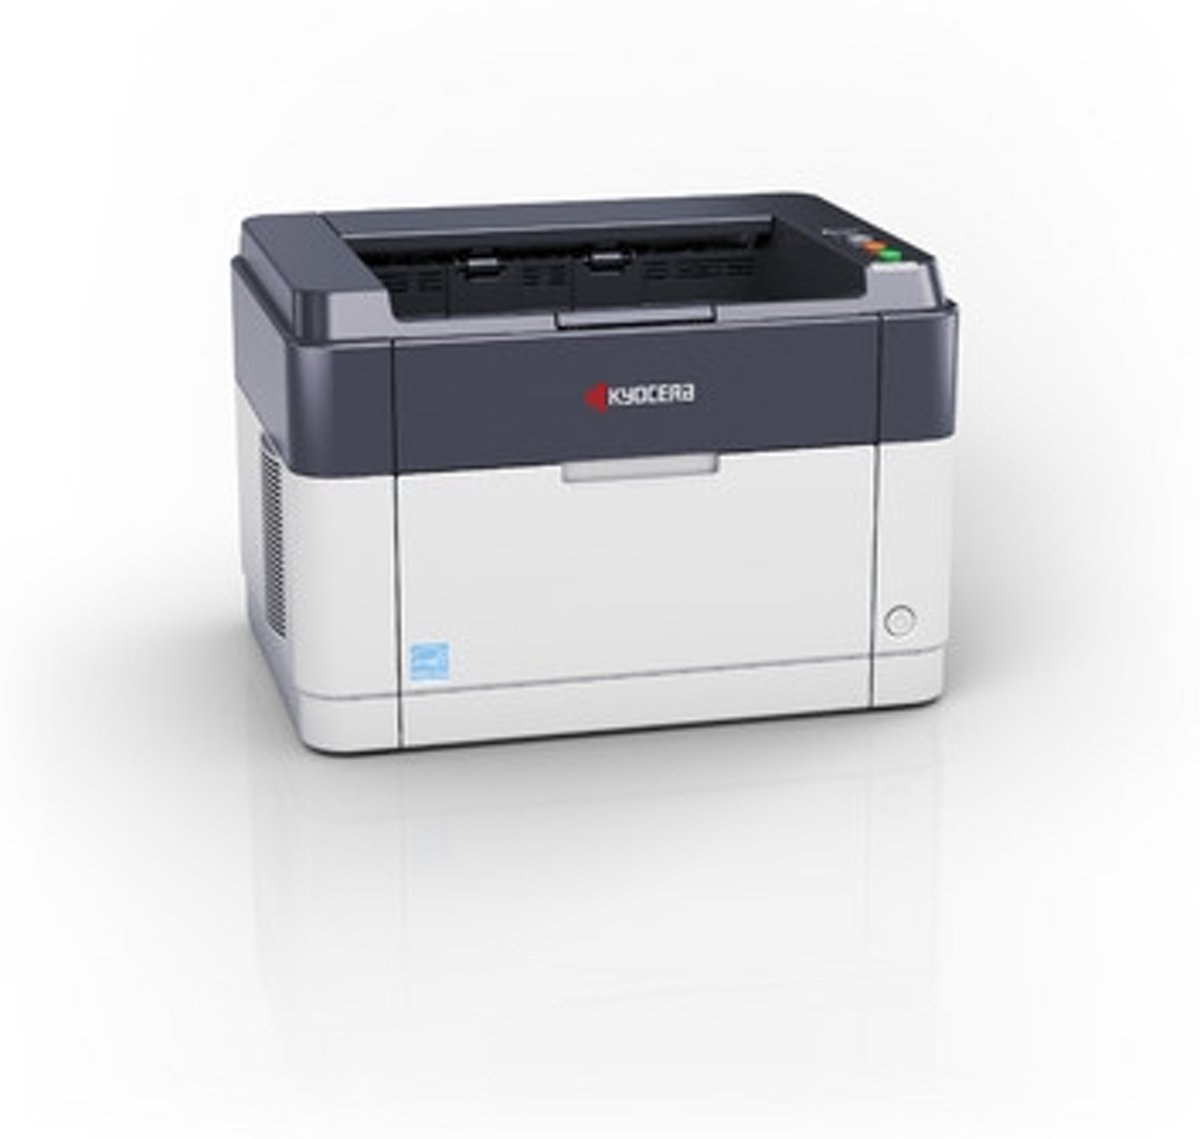 KYOCERA  FS-1041 - Single Function Laserprinter